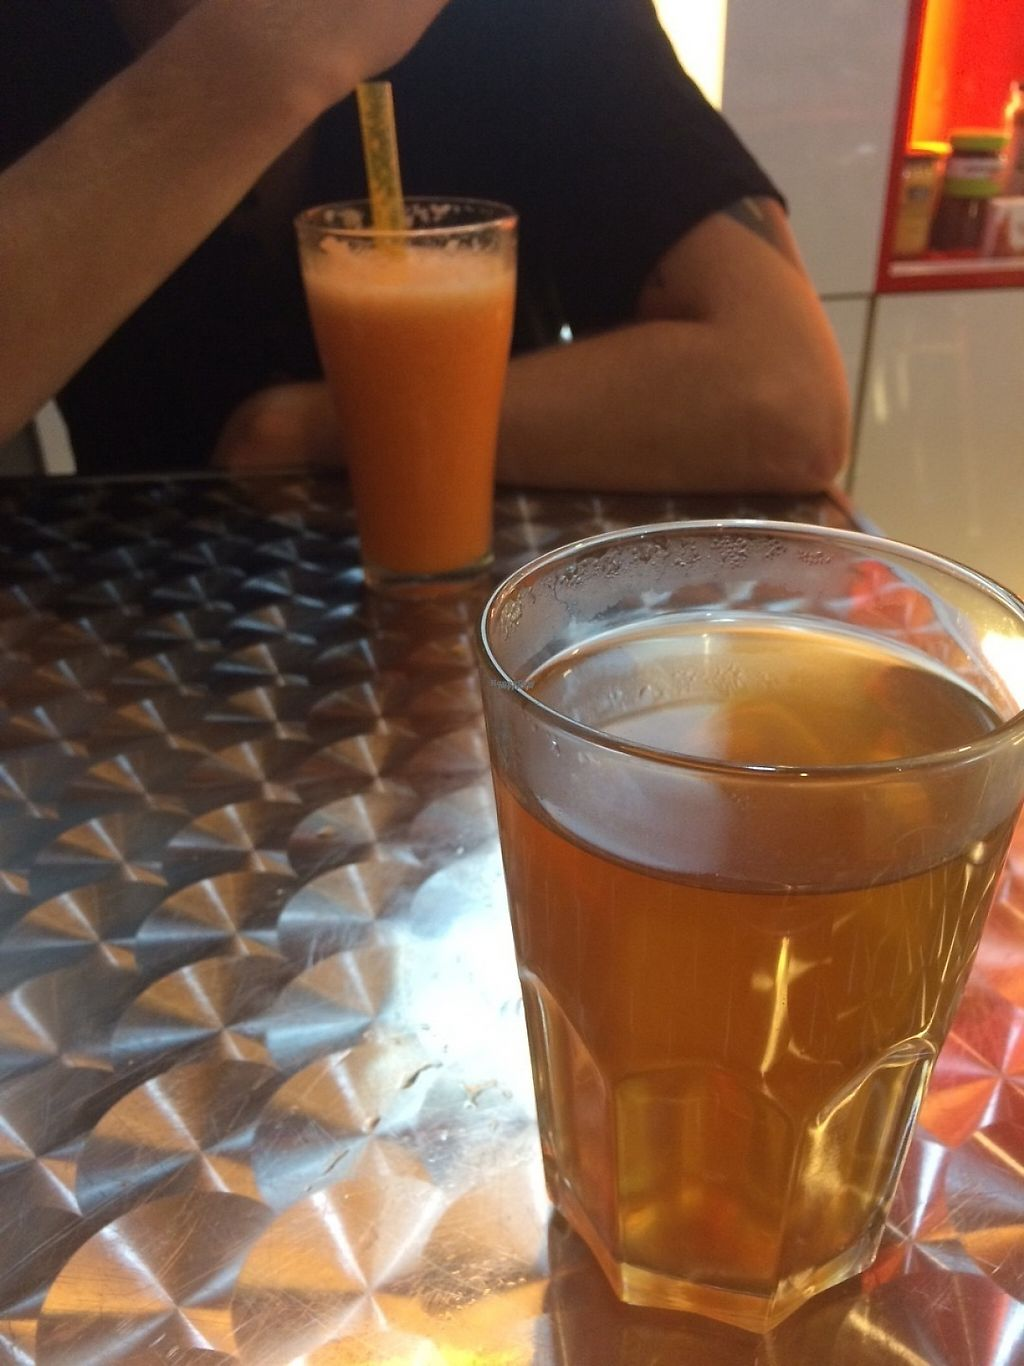 """Photo of CLOSED: Sunfresh Cafe/Detox Kitchen  by <a href=""""/members/profile/sydneyhumble"""">sydneyhumble</a> <br/>Carrot orange juice and super detox tea  <br/> March 21, 2017  - <a href='/contact/abuse/image/80994/239065'>Report</a>"""